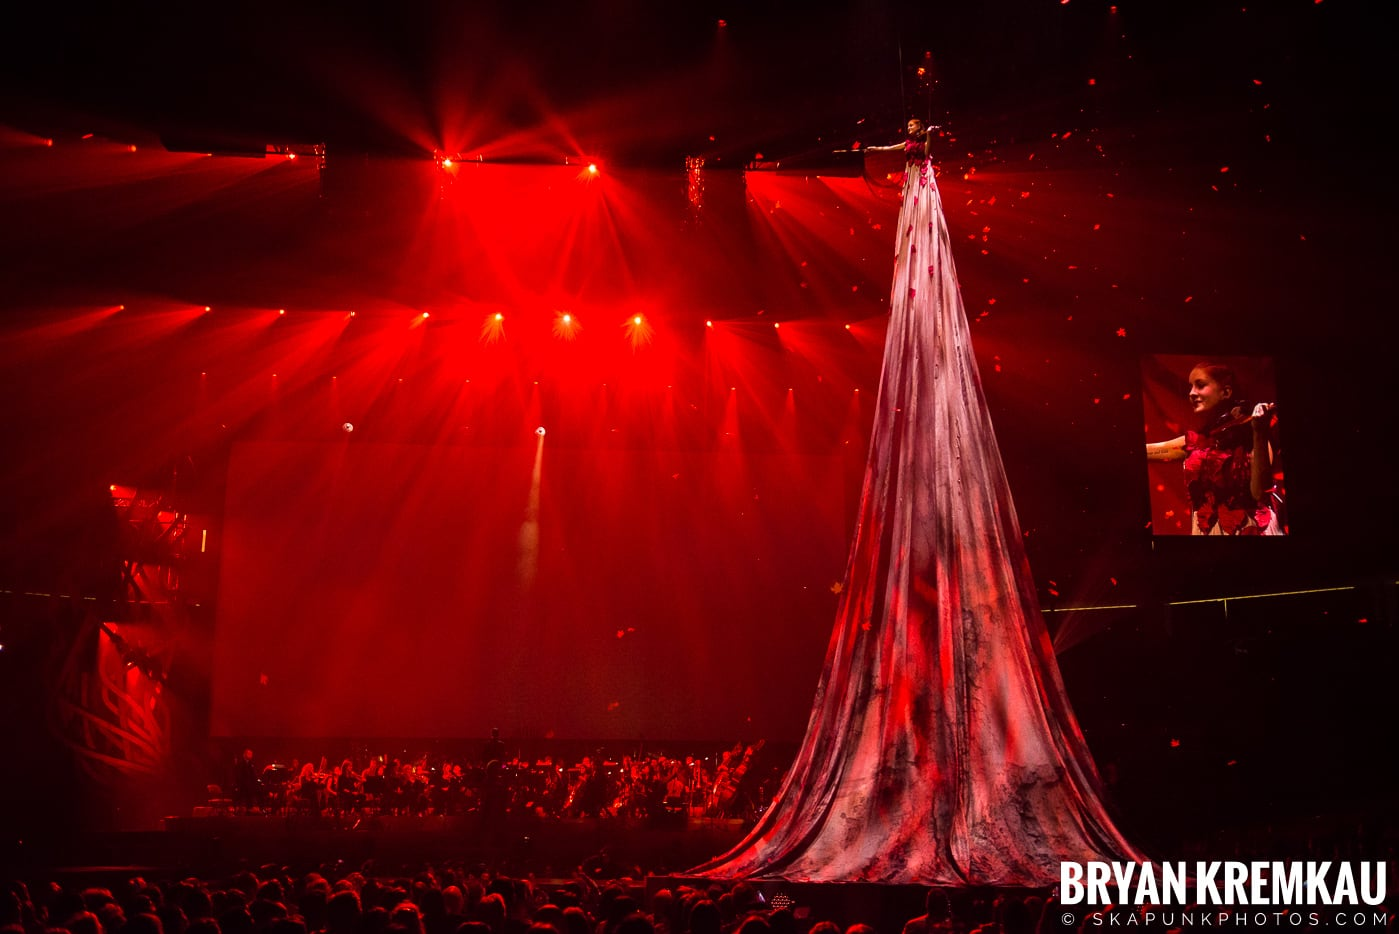 Game of Thrones Live Experience @ Prudential Center, Newark, NJ - 9.26.18 (8)